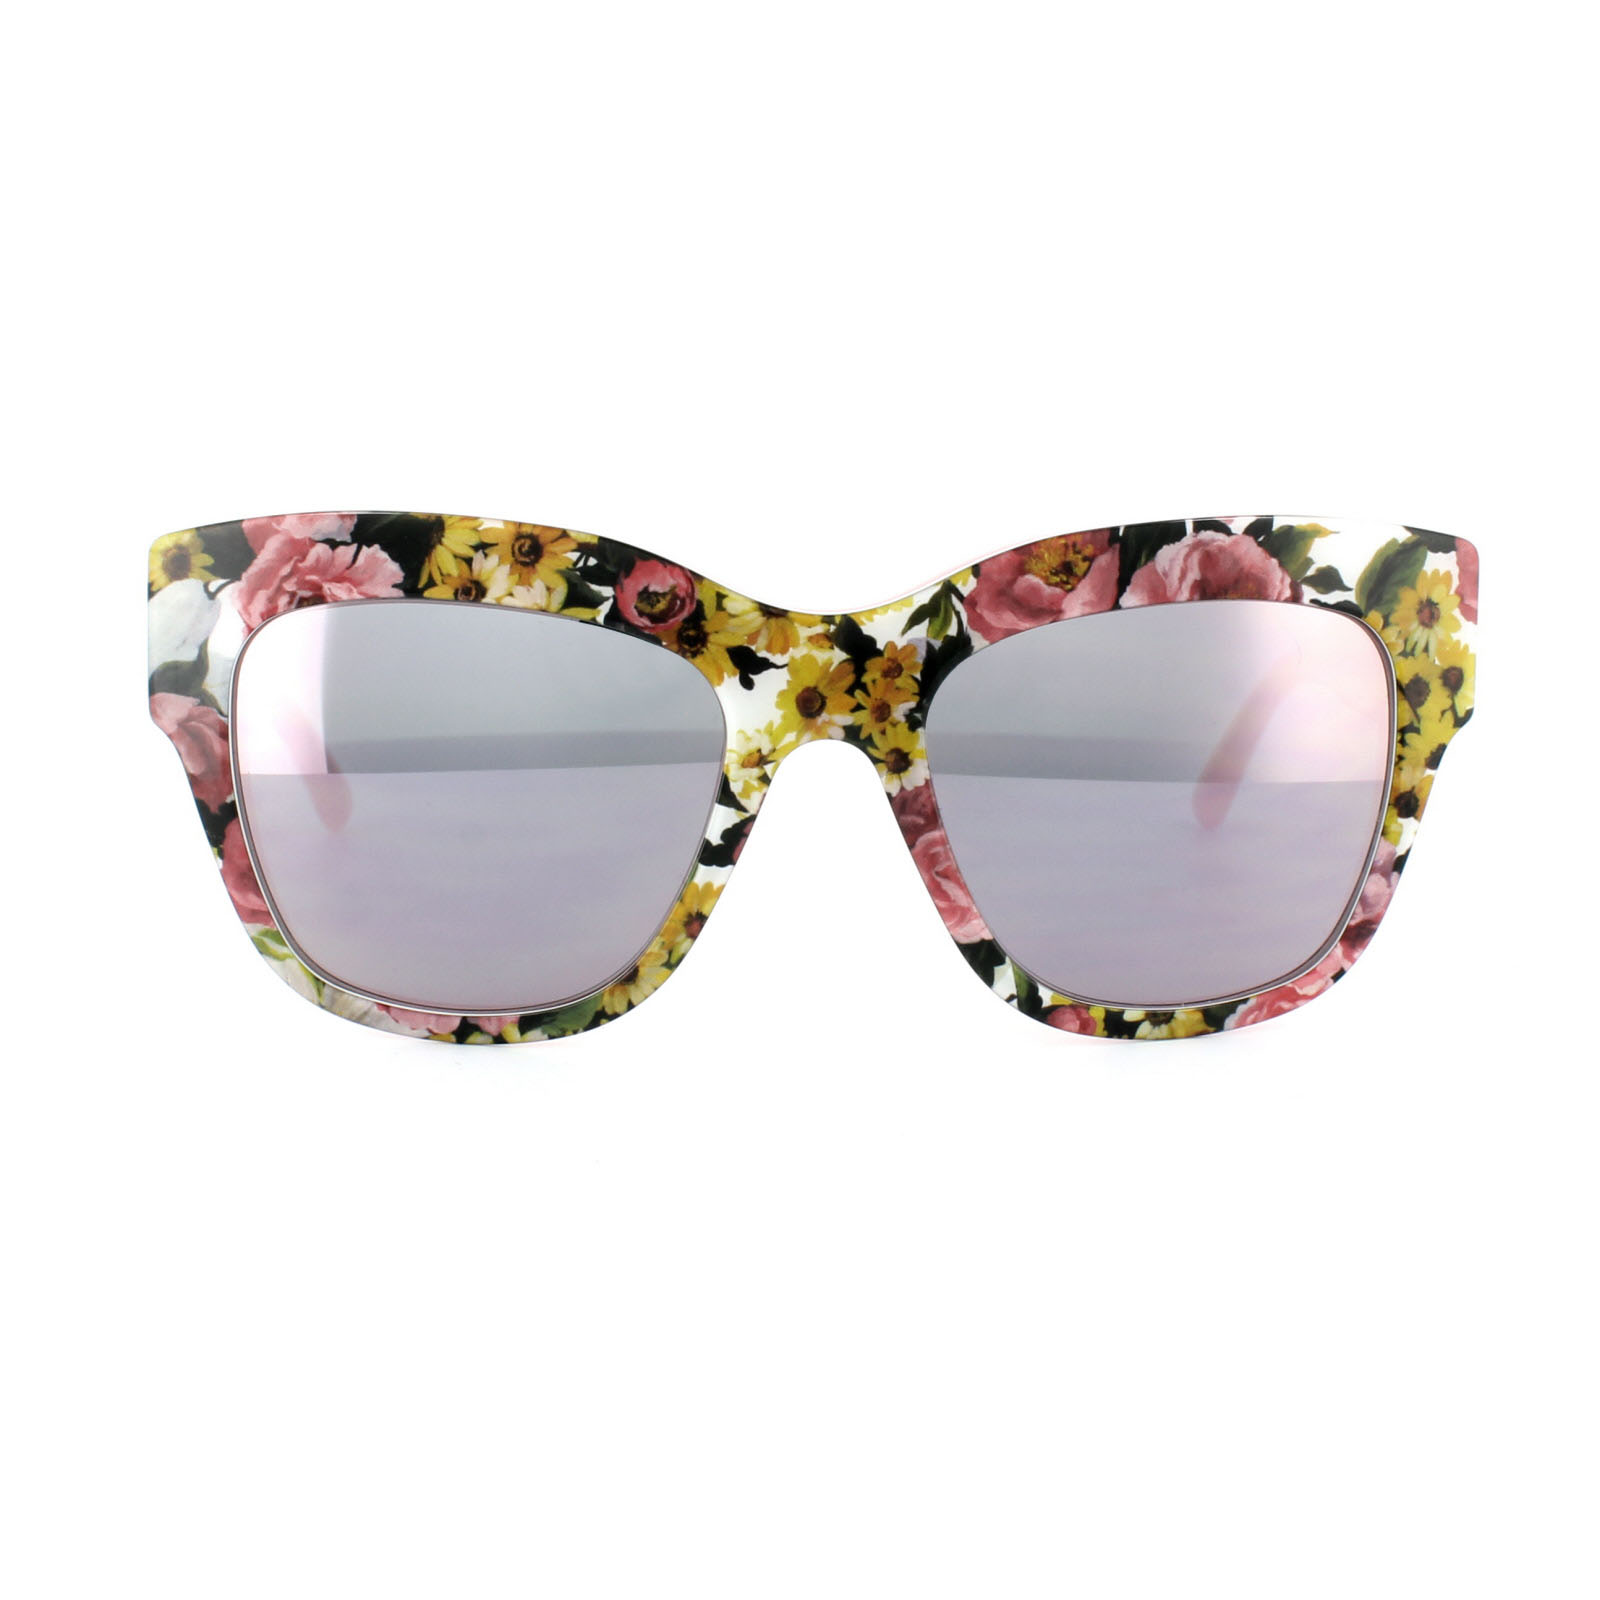 9c76198ccfbd Dolce And Gabbana Almond Flower Sunglasses Price « Heritage Malta